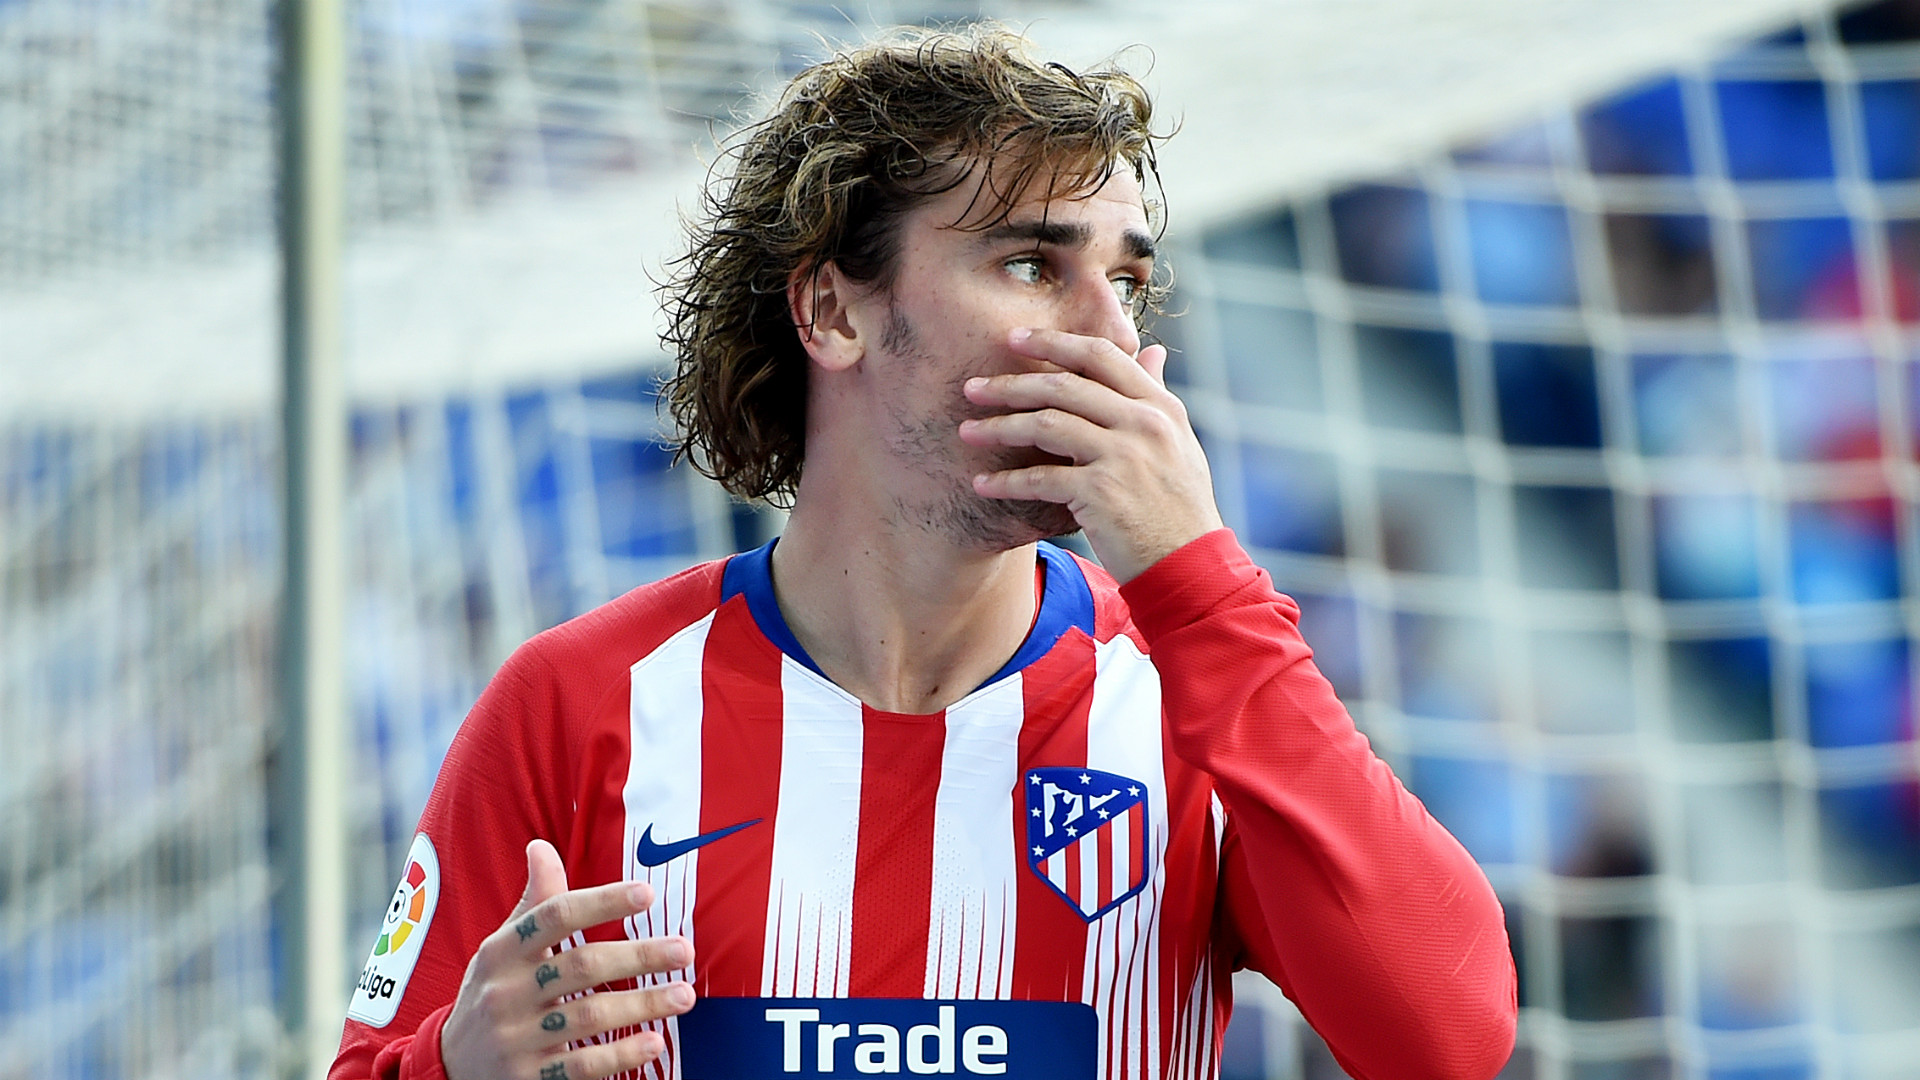 'Griezmann will play in Barcelona' - Atletico chief lifts veil on striker's future